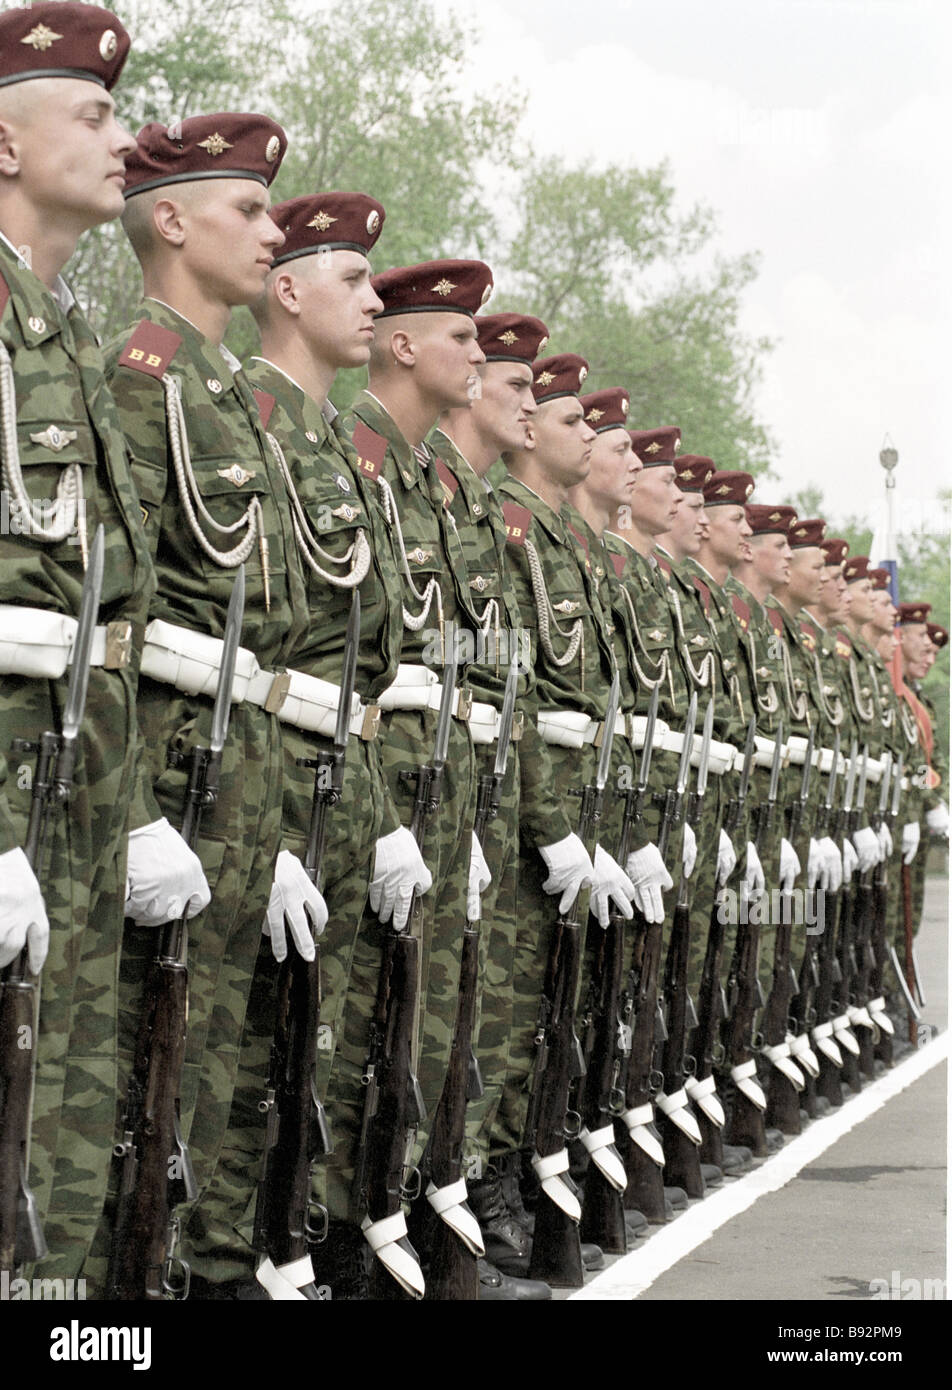 Parade of the Separate Tactical Division of the Russian Ministry of Interior - Stock Image